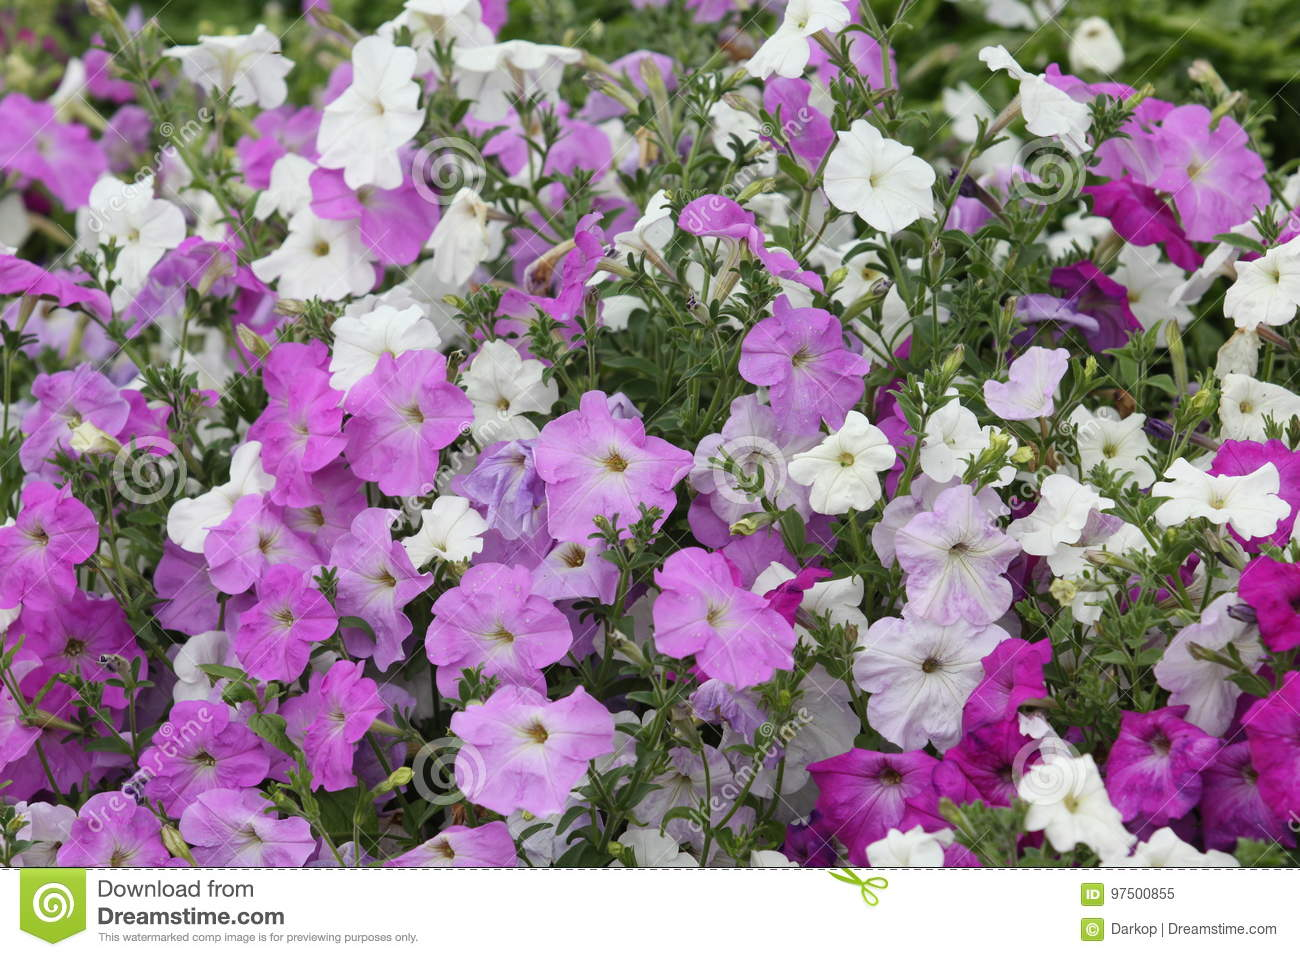 Petunia Hybrid Flowering Plants With Pink And White Flower Stock